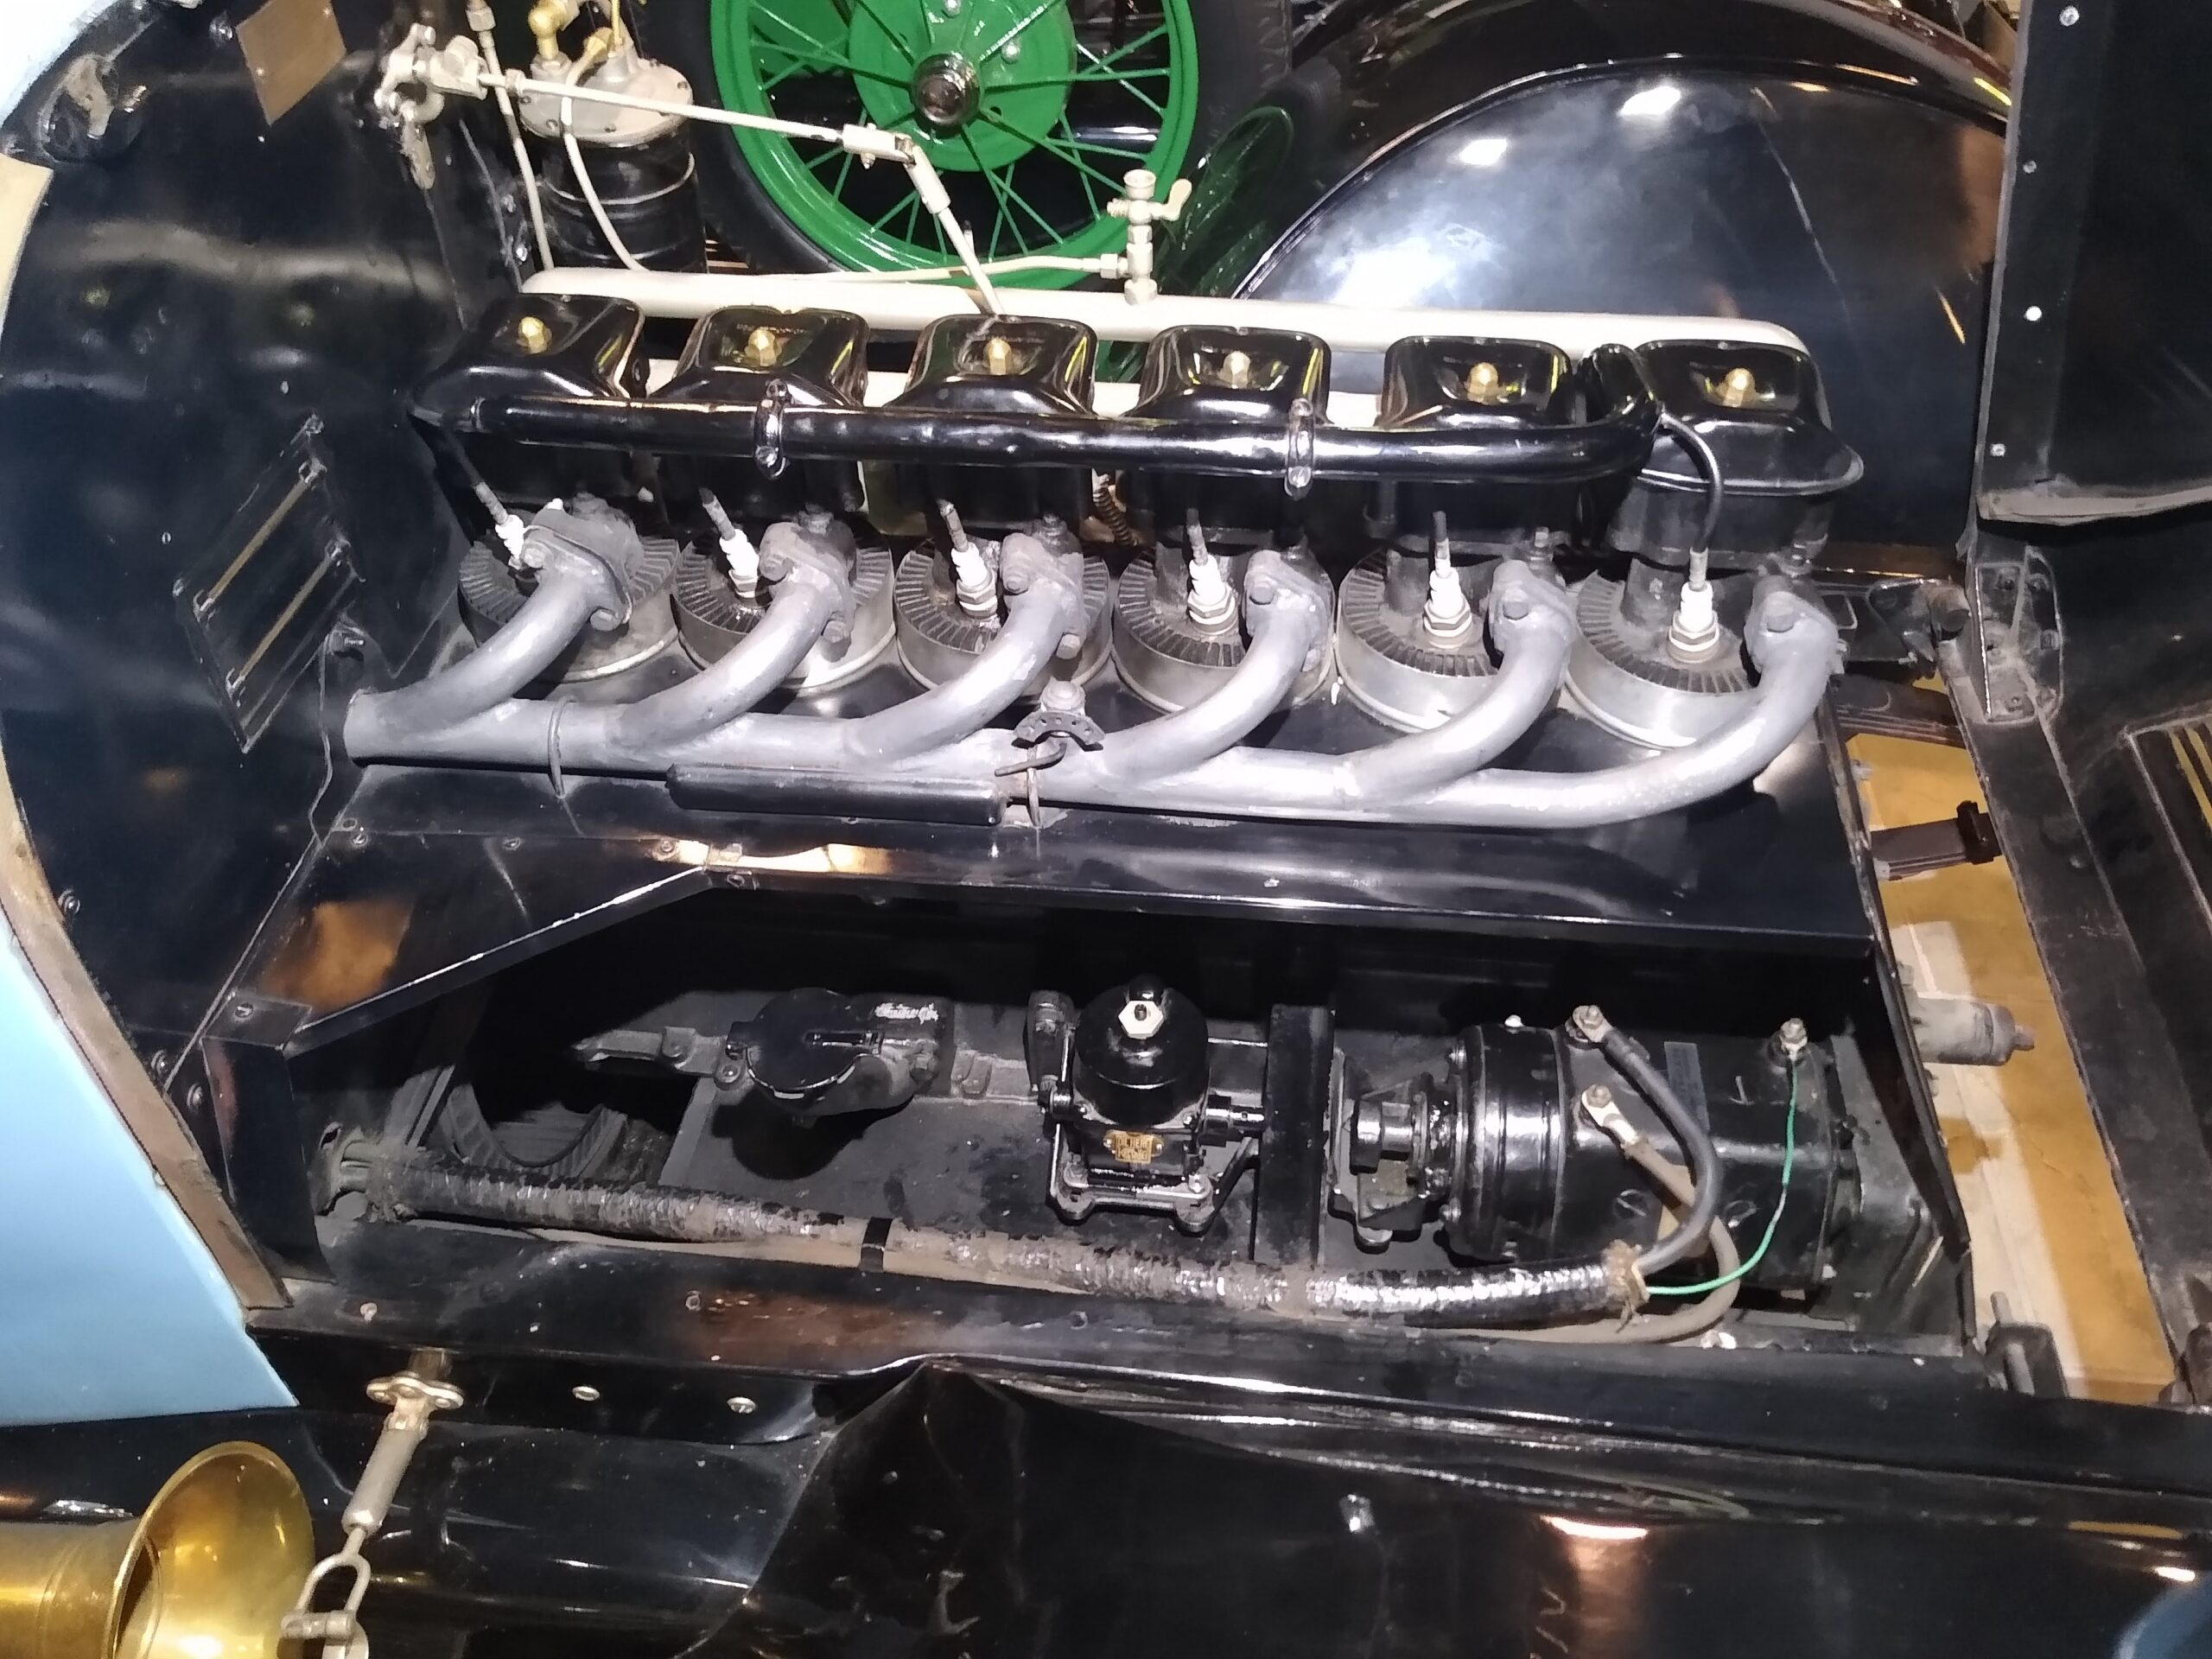 Air Cooled 6 cylinder